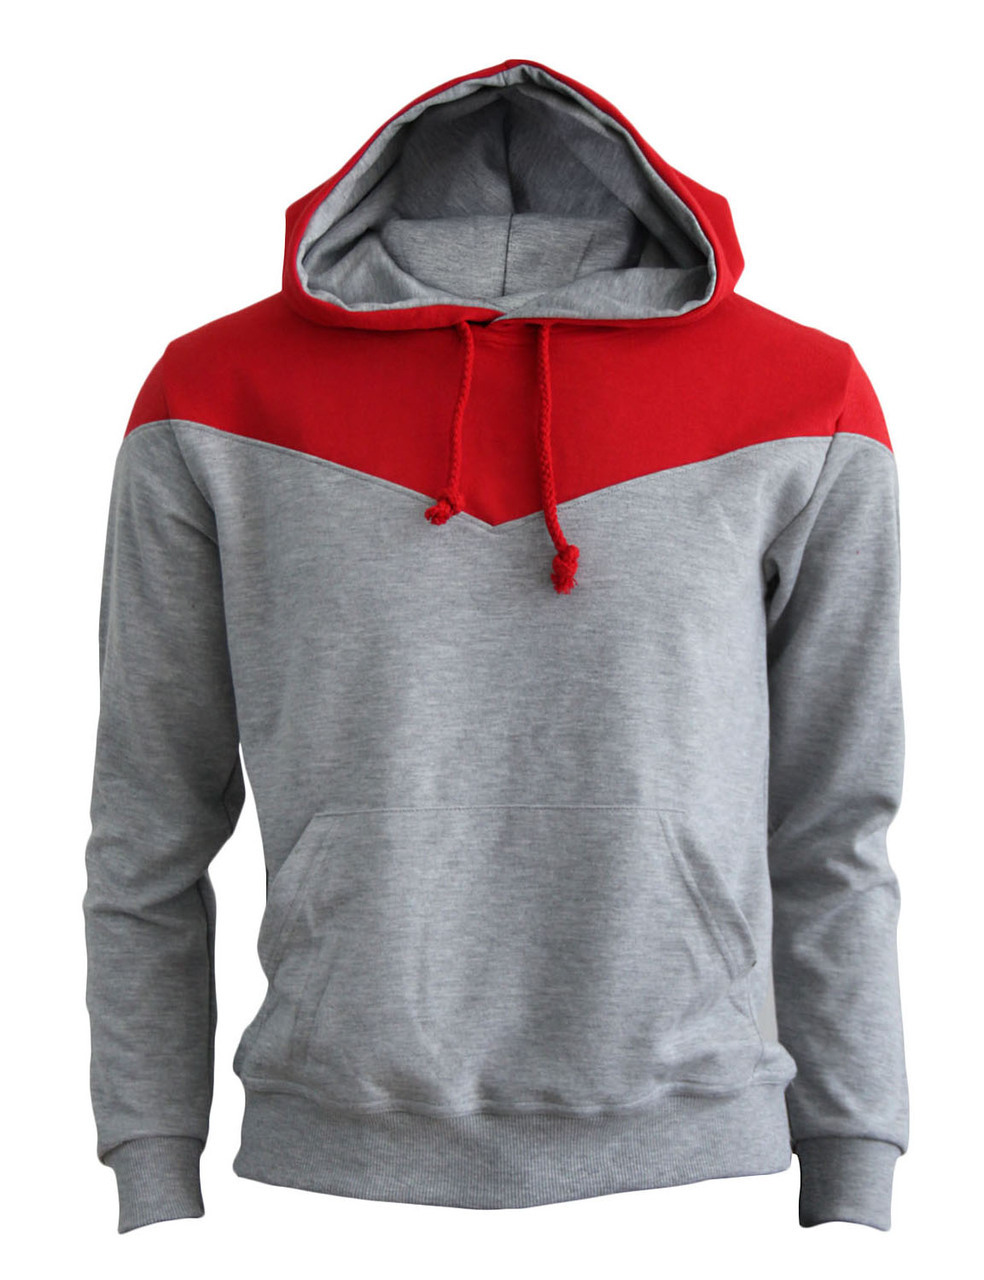 Swim Supplier Qality T-shirt Pant Age Shorts And Leggings Of Joggers Manufacturer Tank Wear Sweat amp; Head Suits Track - Hoodies Apparel Top bdbcfefcaed|Plano Native Rex Burkhead Heads To The Super Bowl For The Second Time